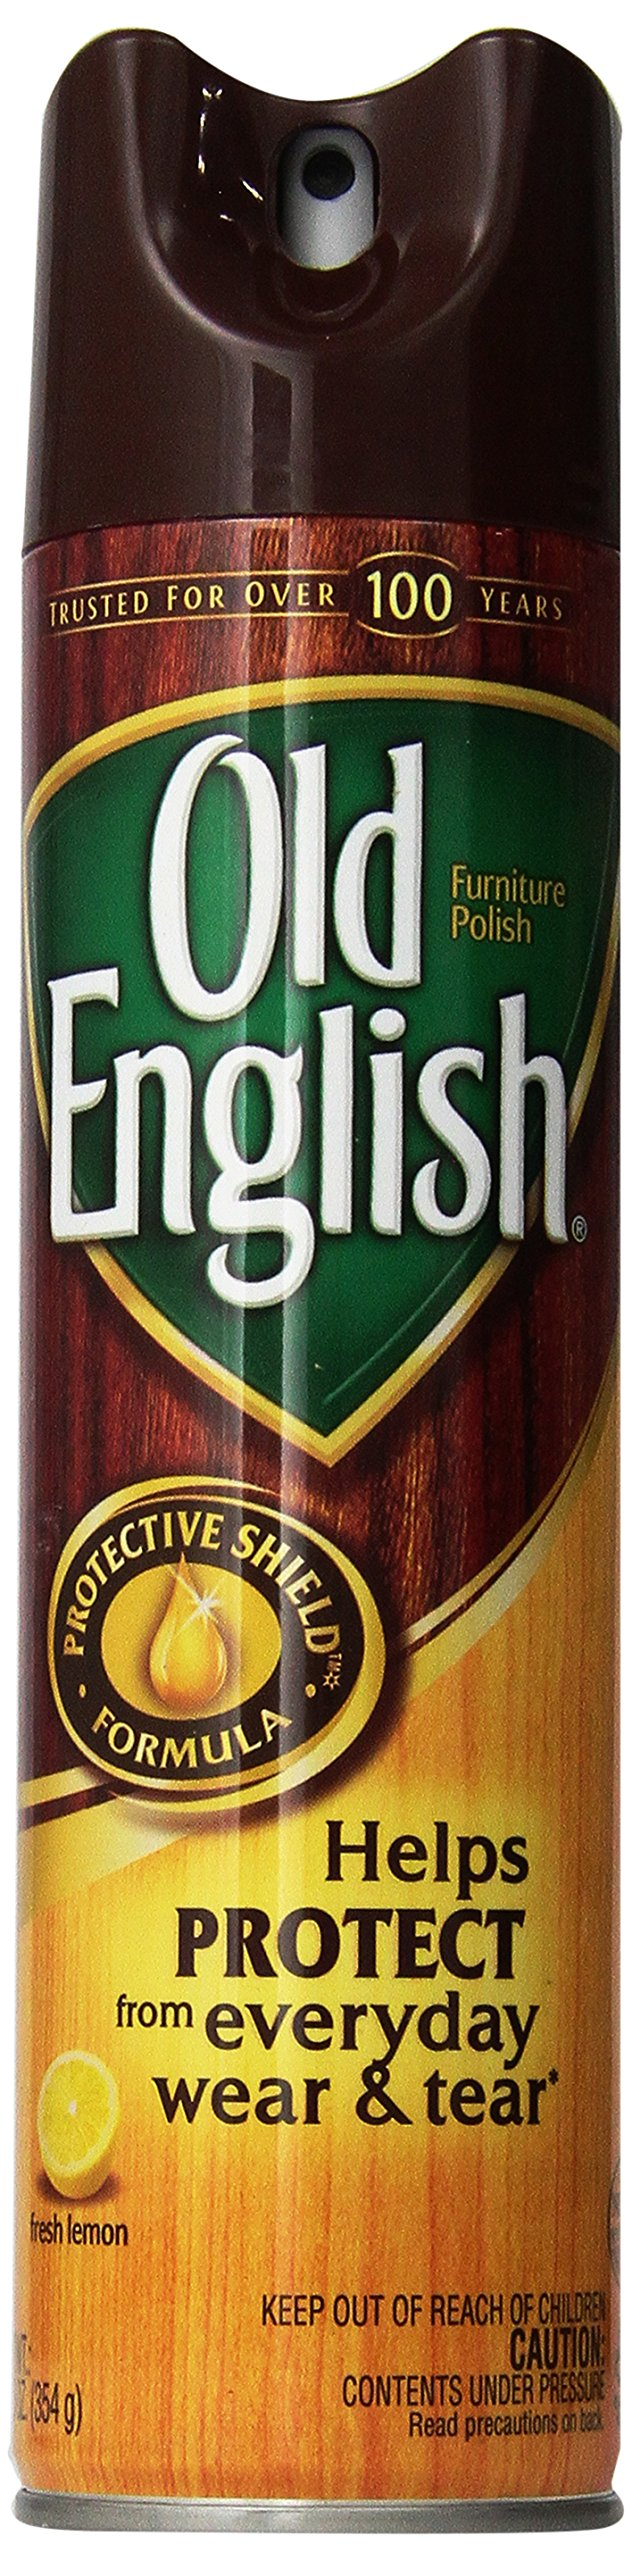 Old English Furniture Polish, Lemon 150 oz (12 Cans x 12.5 oz) by Old English